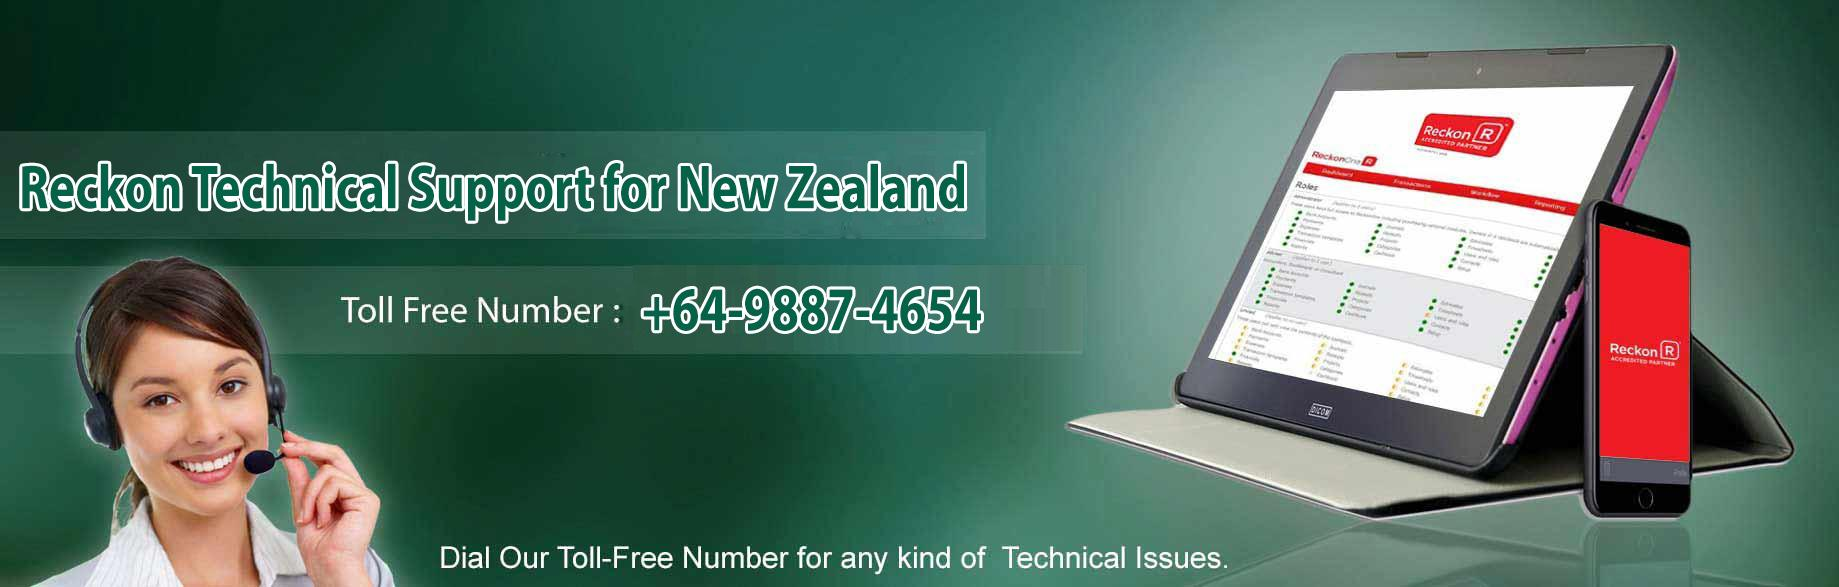 Reckon Customer Support Number New Zealand 64-9887-4654